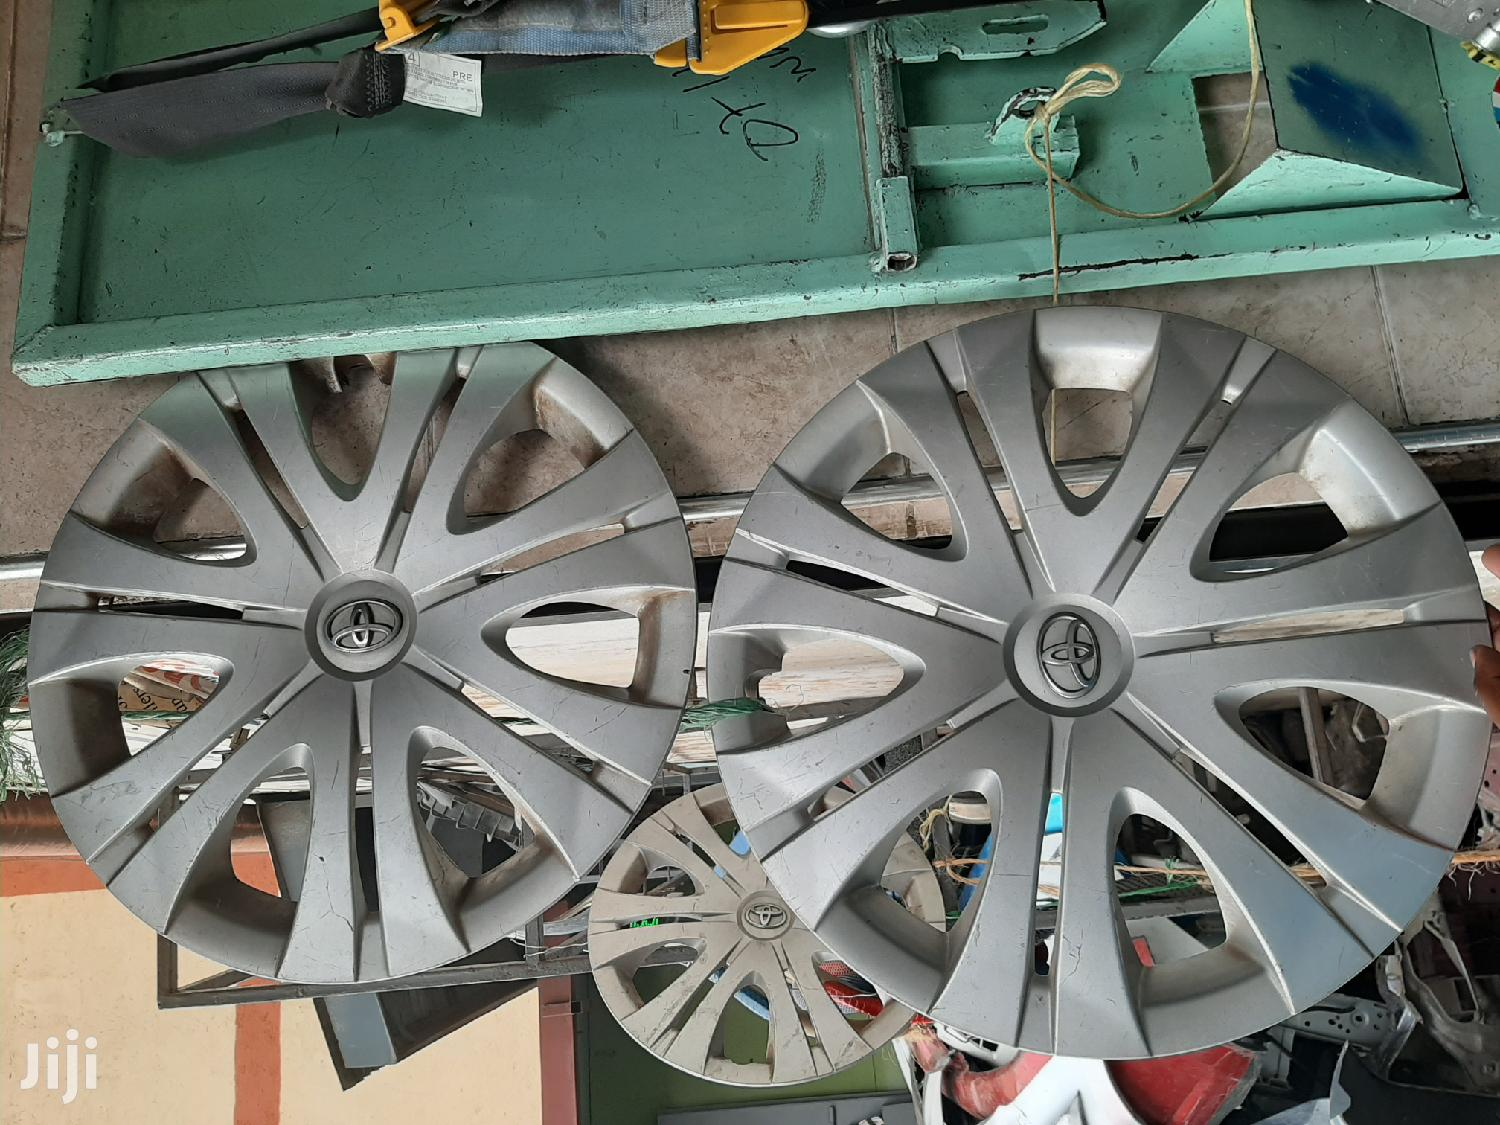 Toyota Wheelcap Size 16 Full Set Auto Car Spare Body Parts | Vehicle Parts & Accessories for sale in Nairobi Central, Nairobi, Kenya